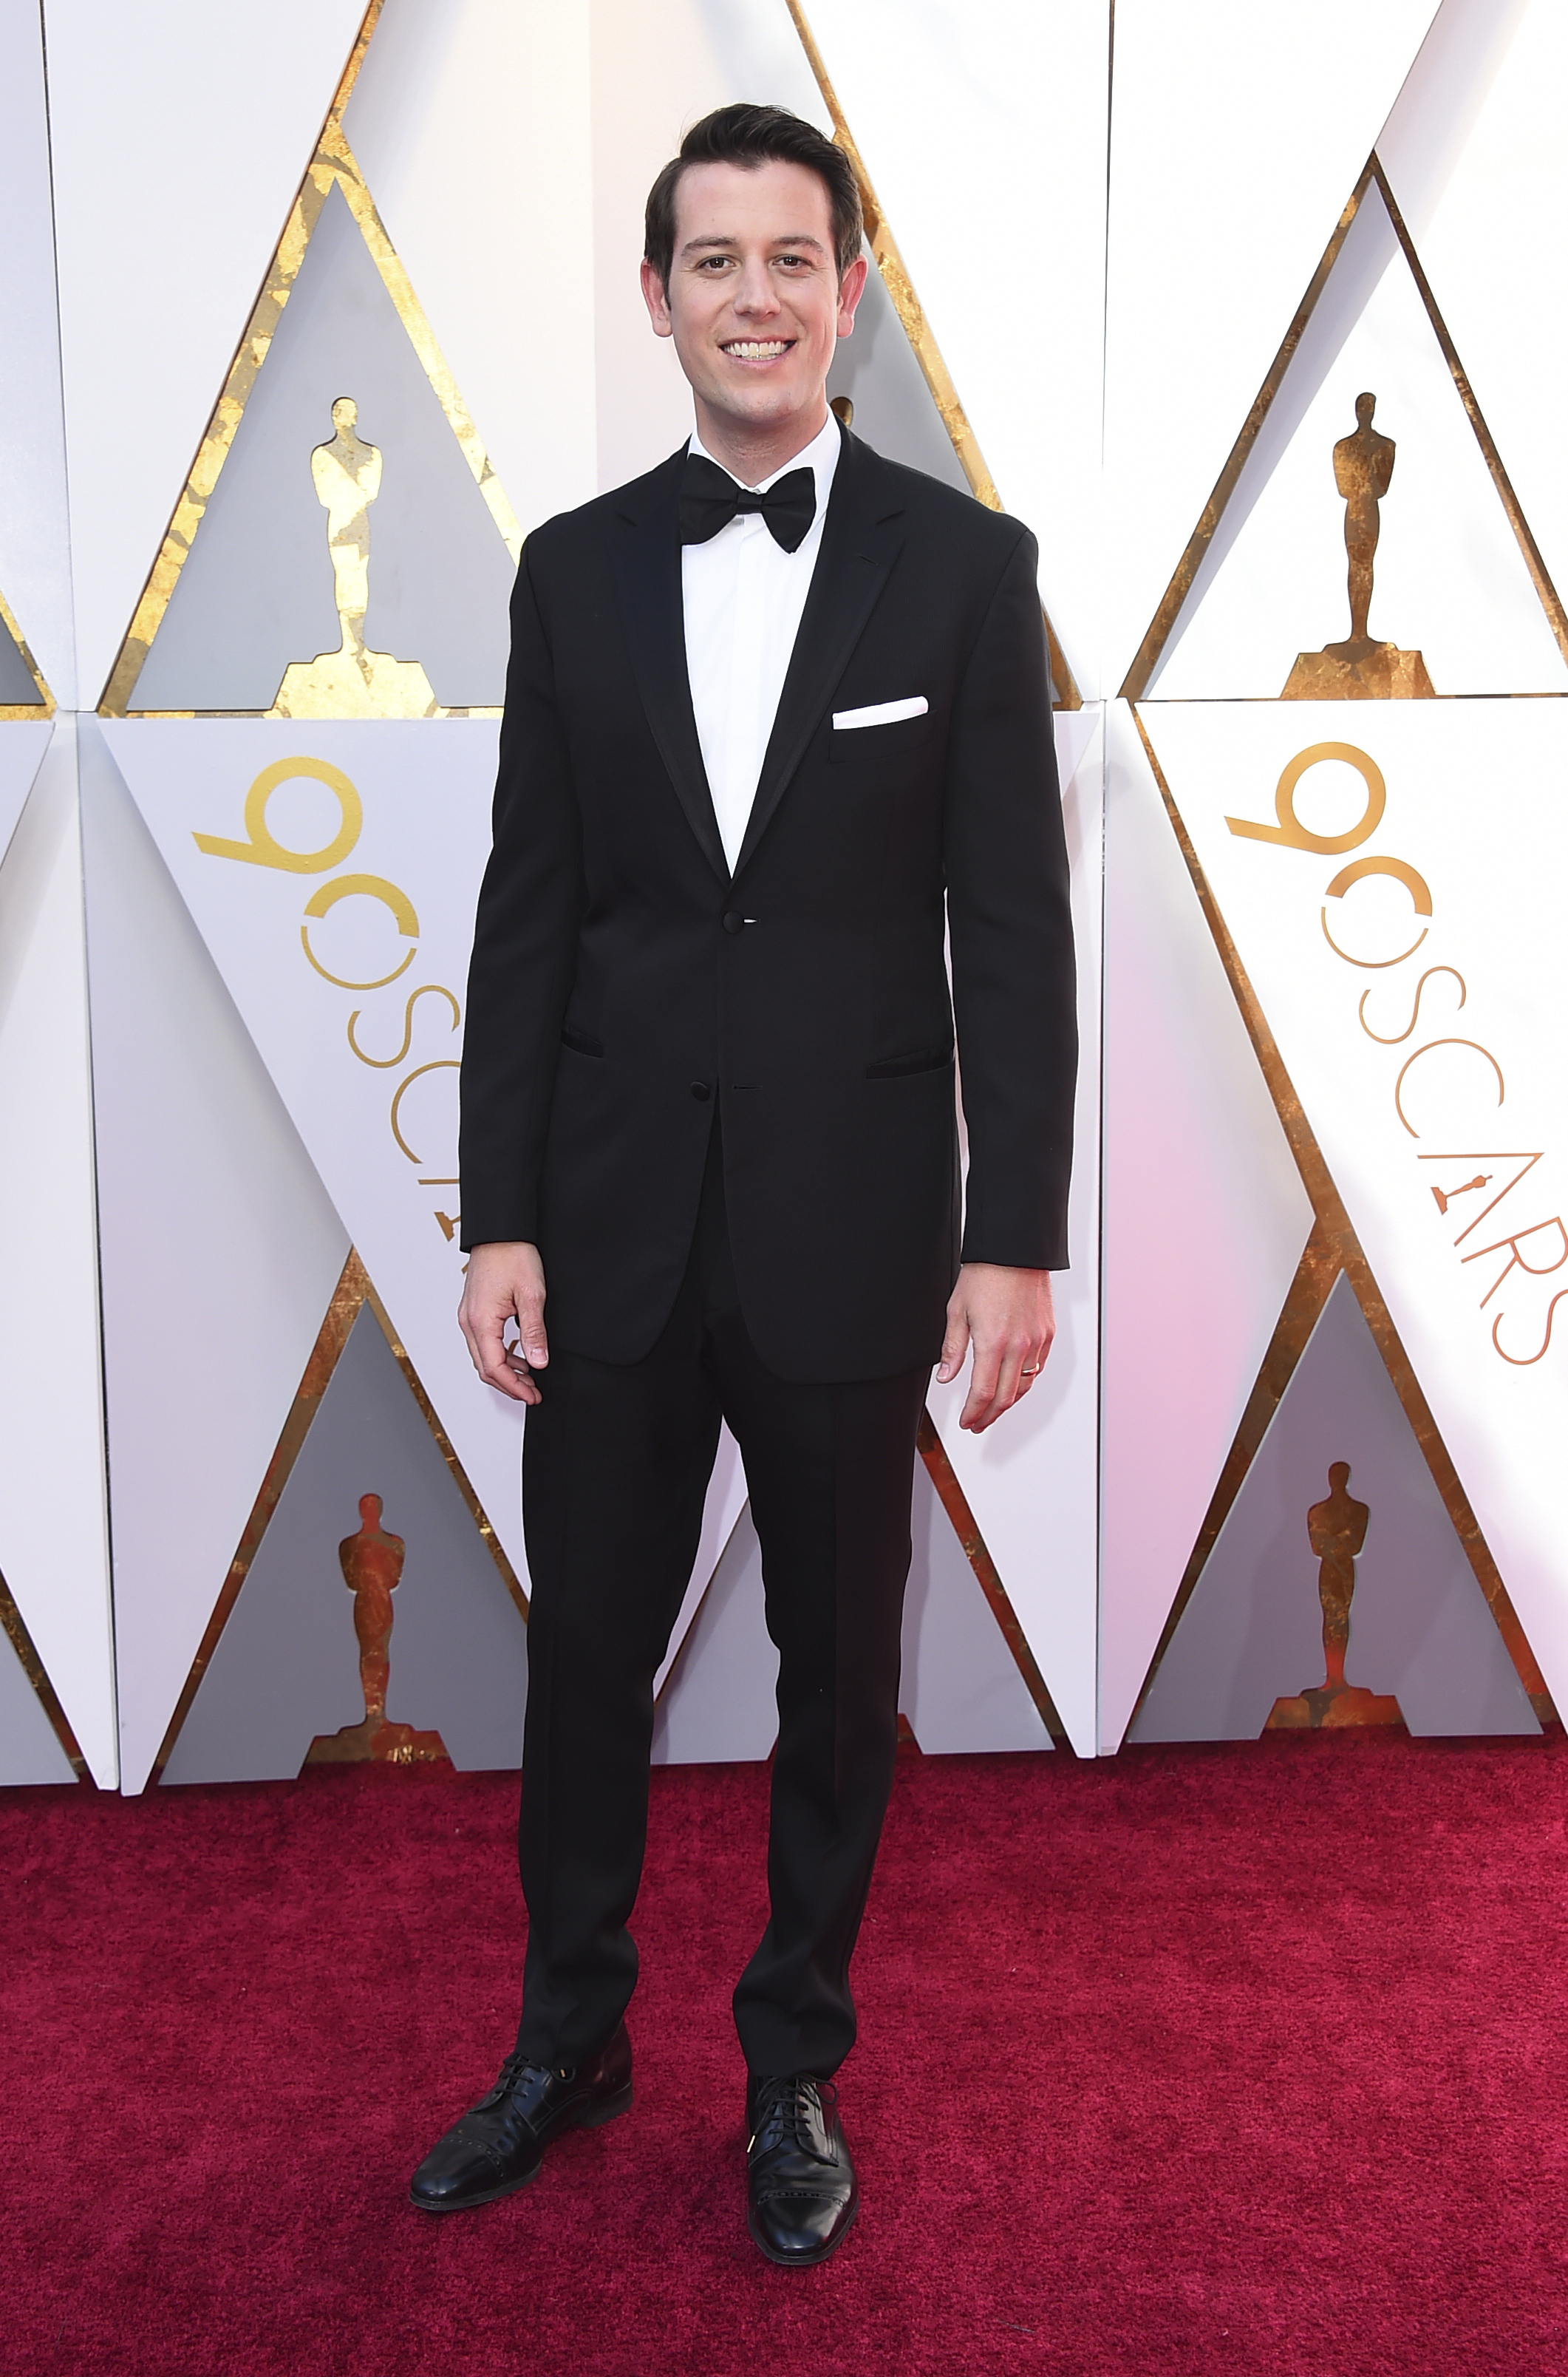 <div class='meta'><div class='origin-logo' data-origin='none'></div><span class='caption-text' data-credit='Jordan Strauss/Invision/AP'>Ben Lyons arrives at the Oscars on Sunday, March 4, 2018, at the Dolby Theatre in Los Angeles.</span></div>